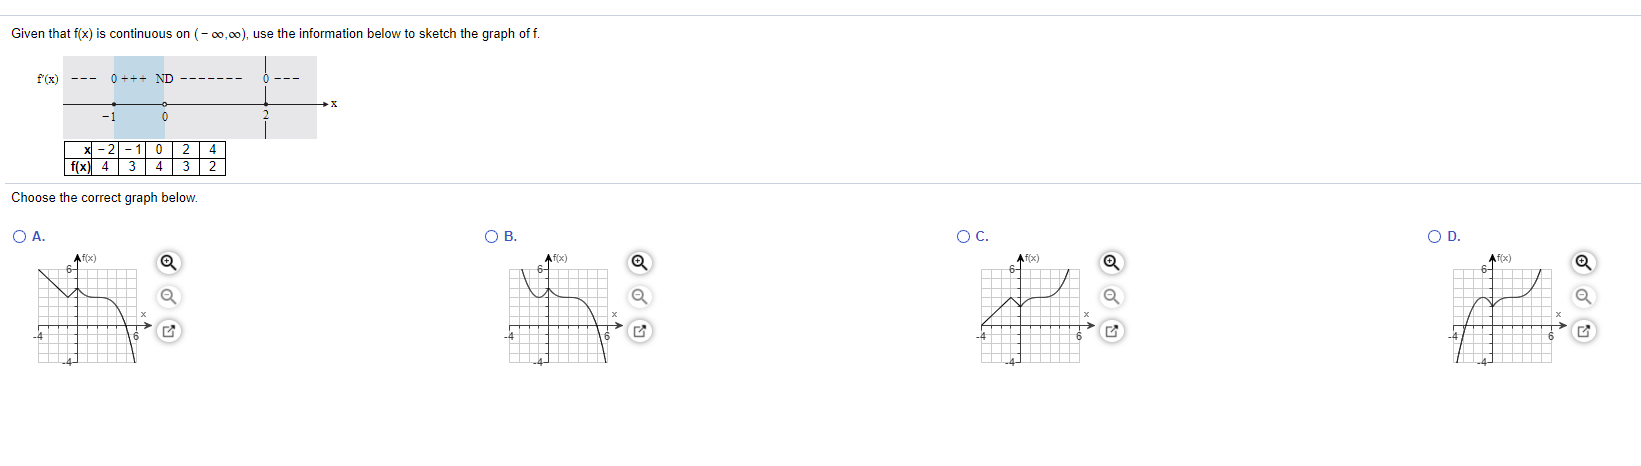 Given that f(x) is continuous on (-00,00), use the information below to sketch the graph off. 0 ++- ND 2 f(x) 4 3 2 Choose th